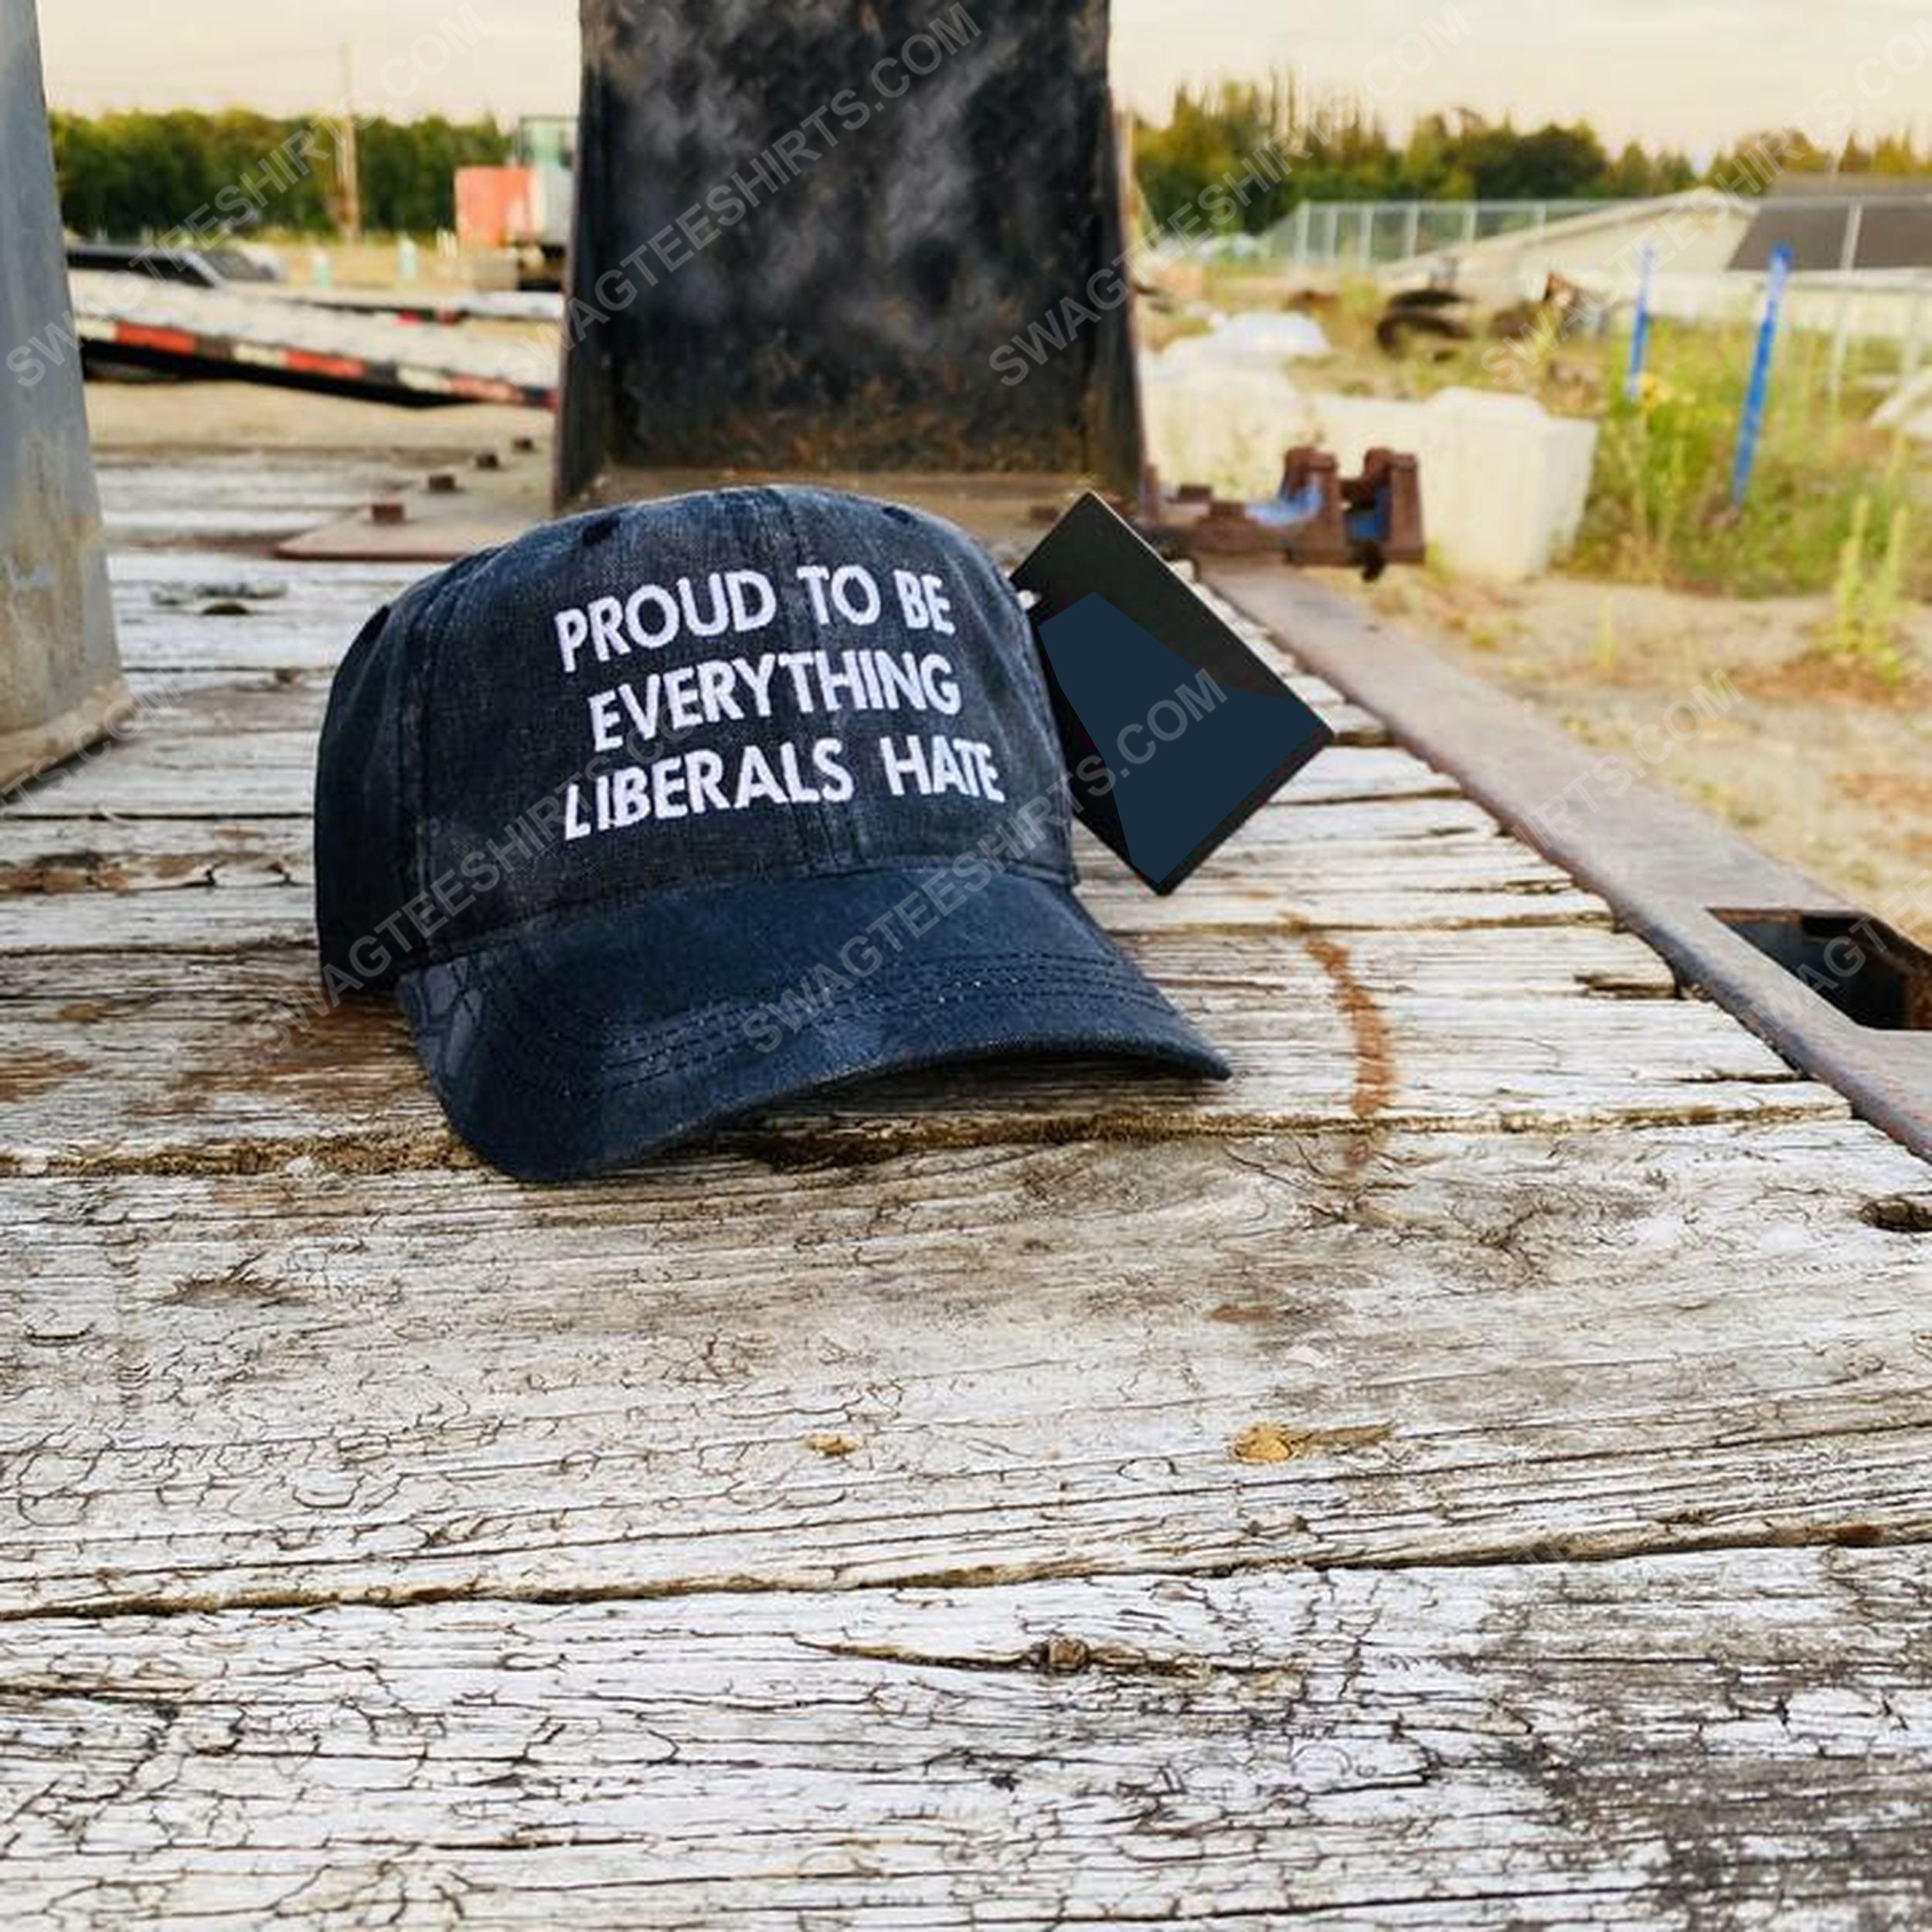 Proud to be everything liberals hate full print classic hat 1 - Copy (3)